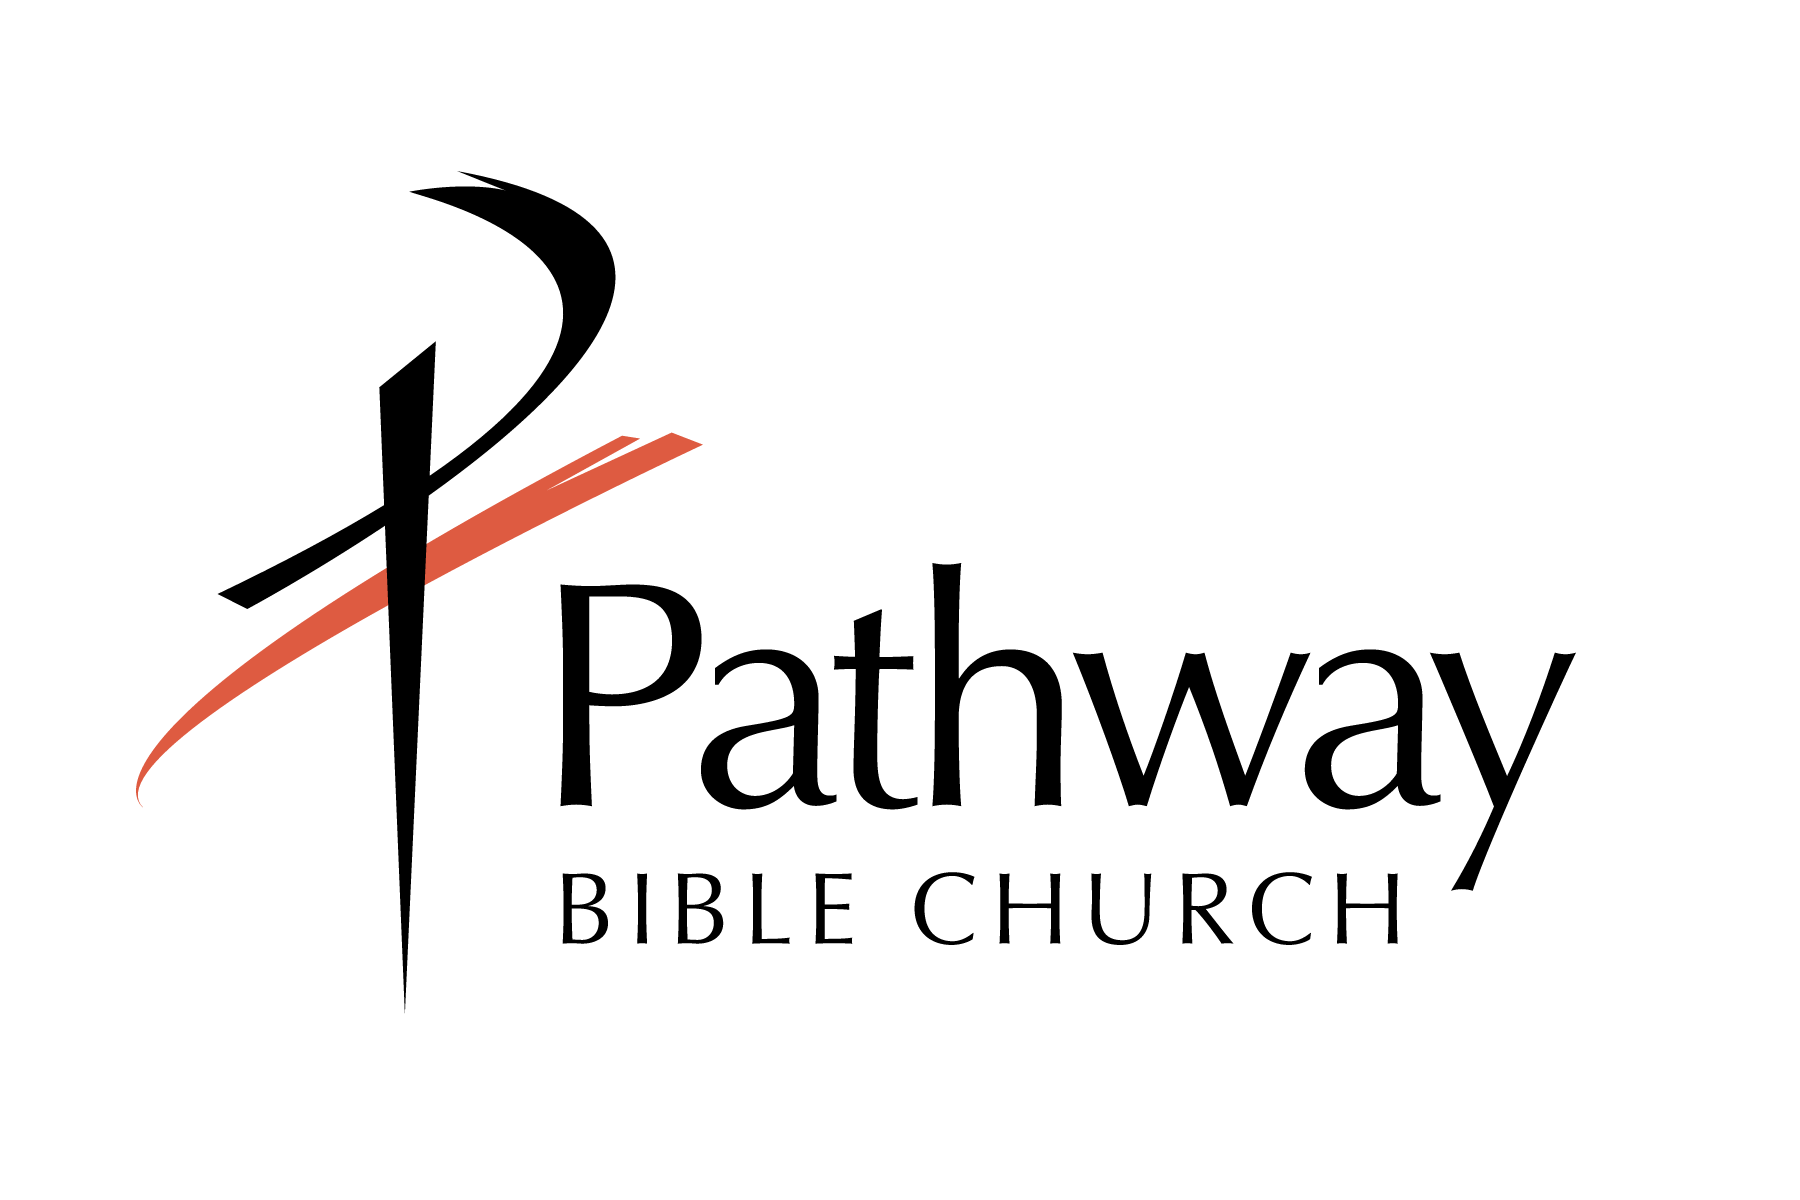 Pathway Bible Church